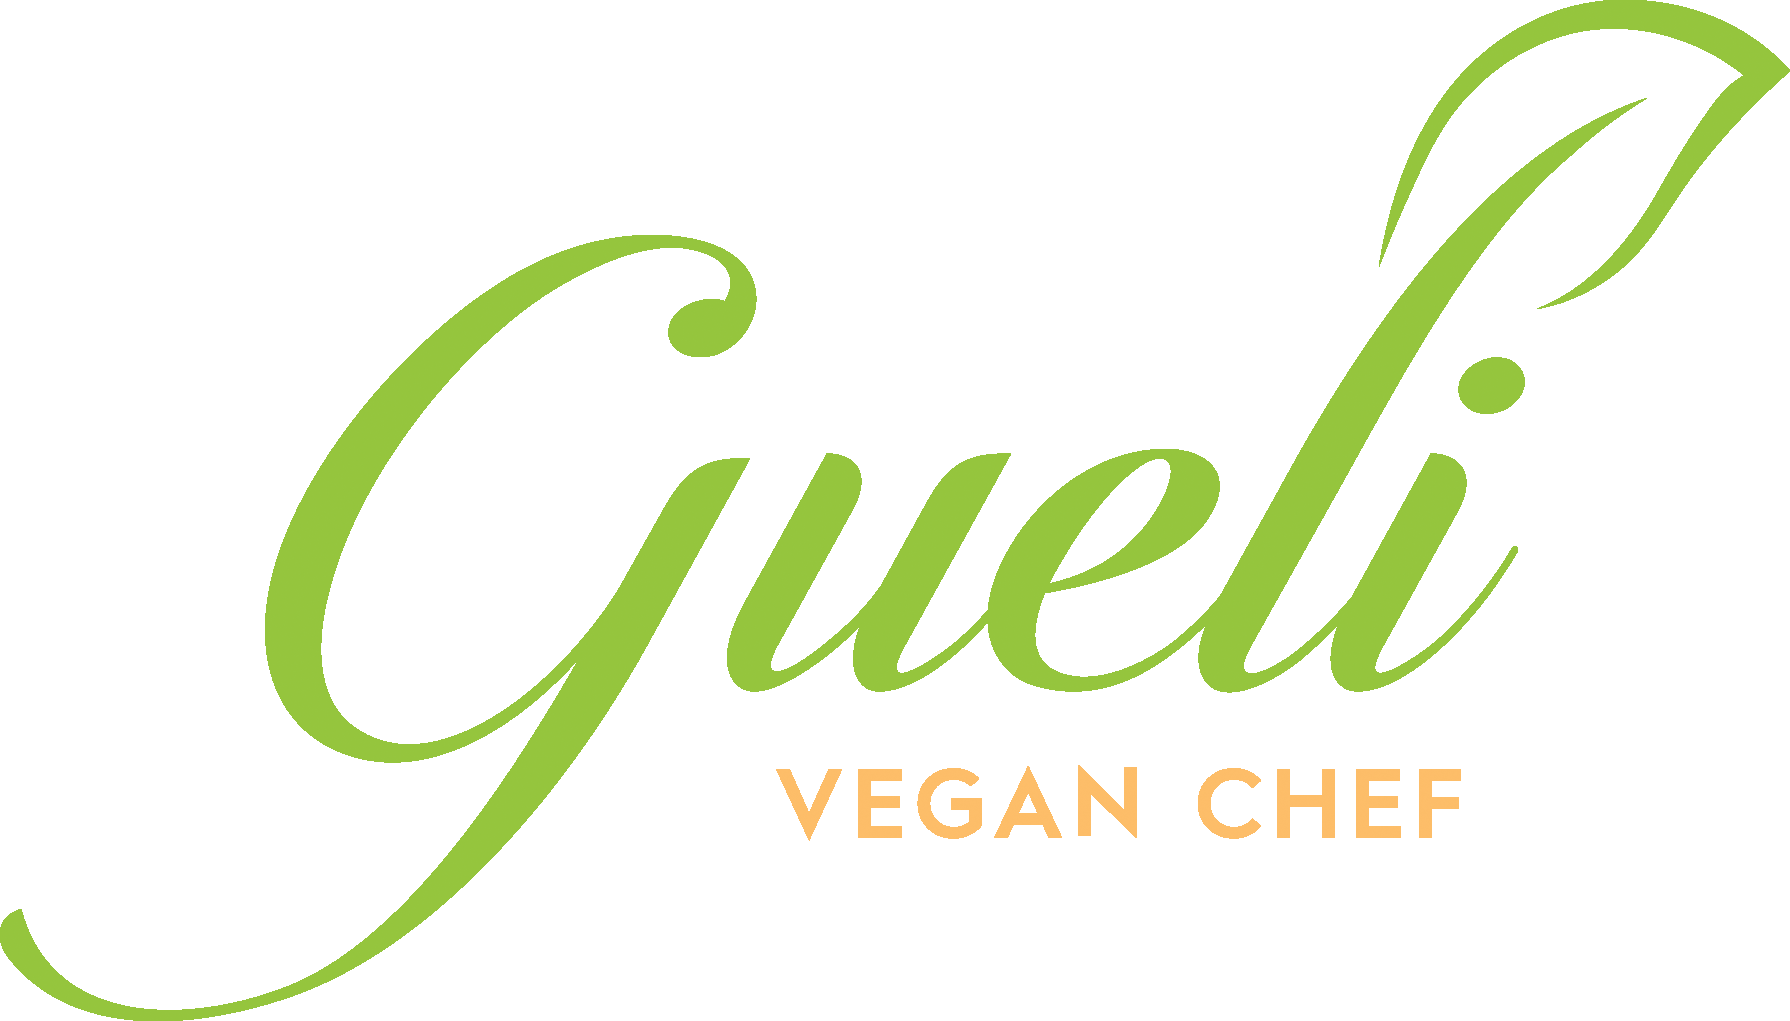 Vegan Chef Gueli